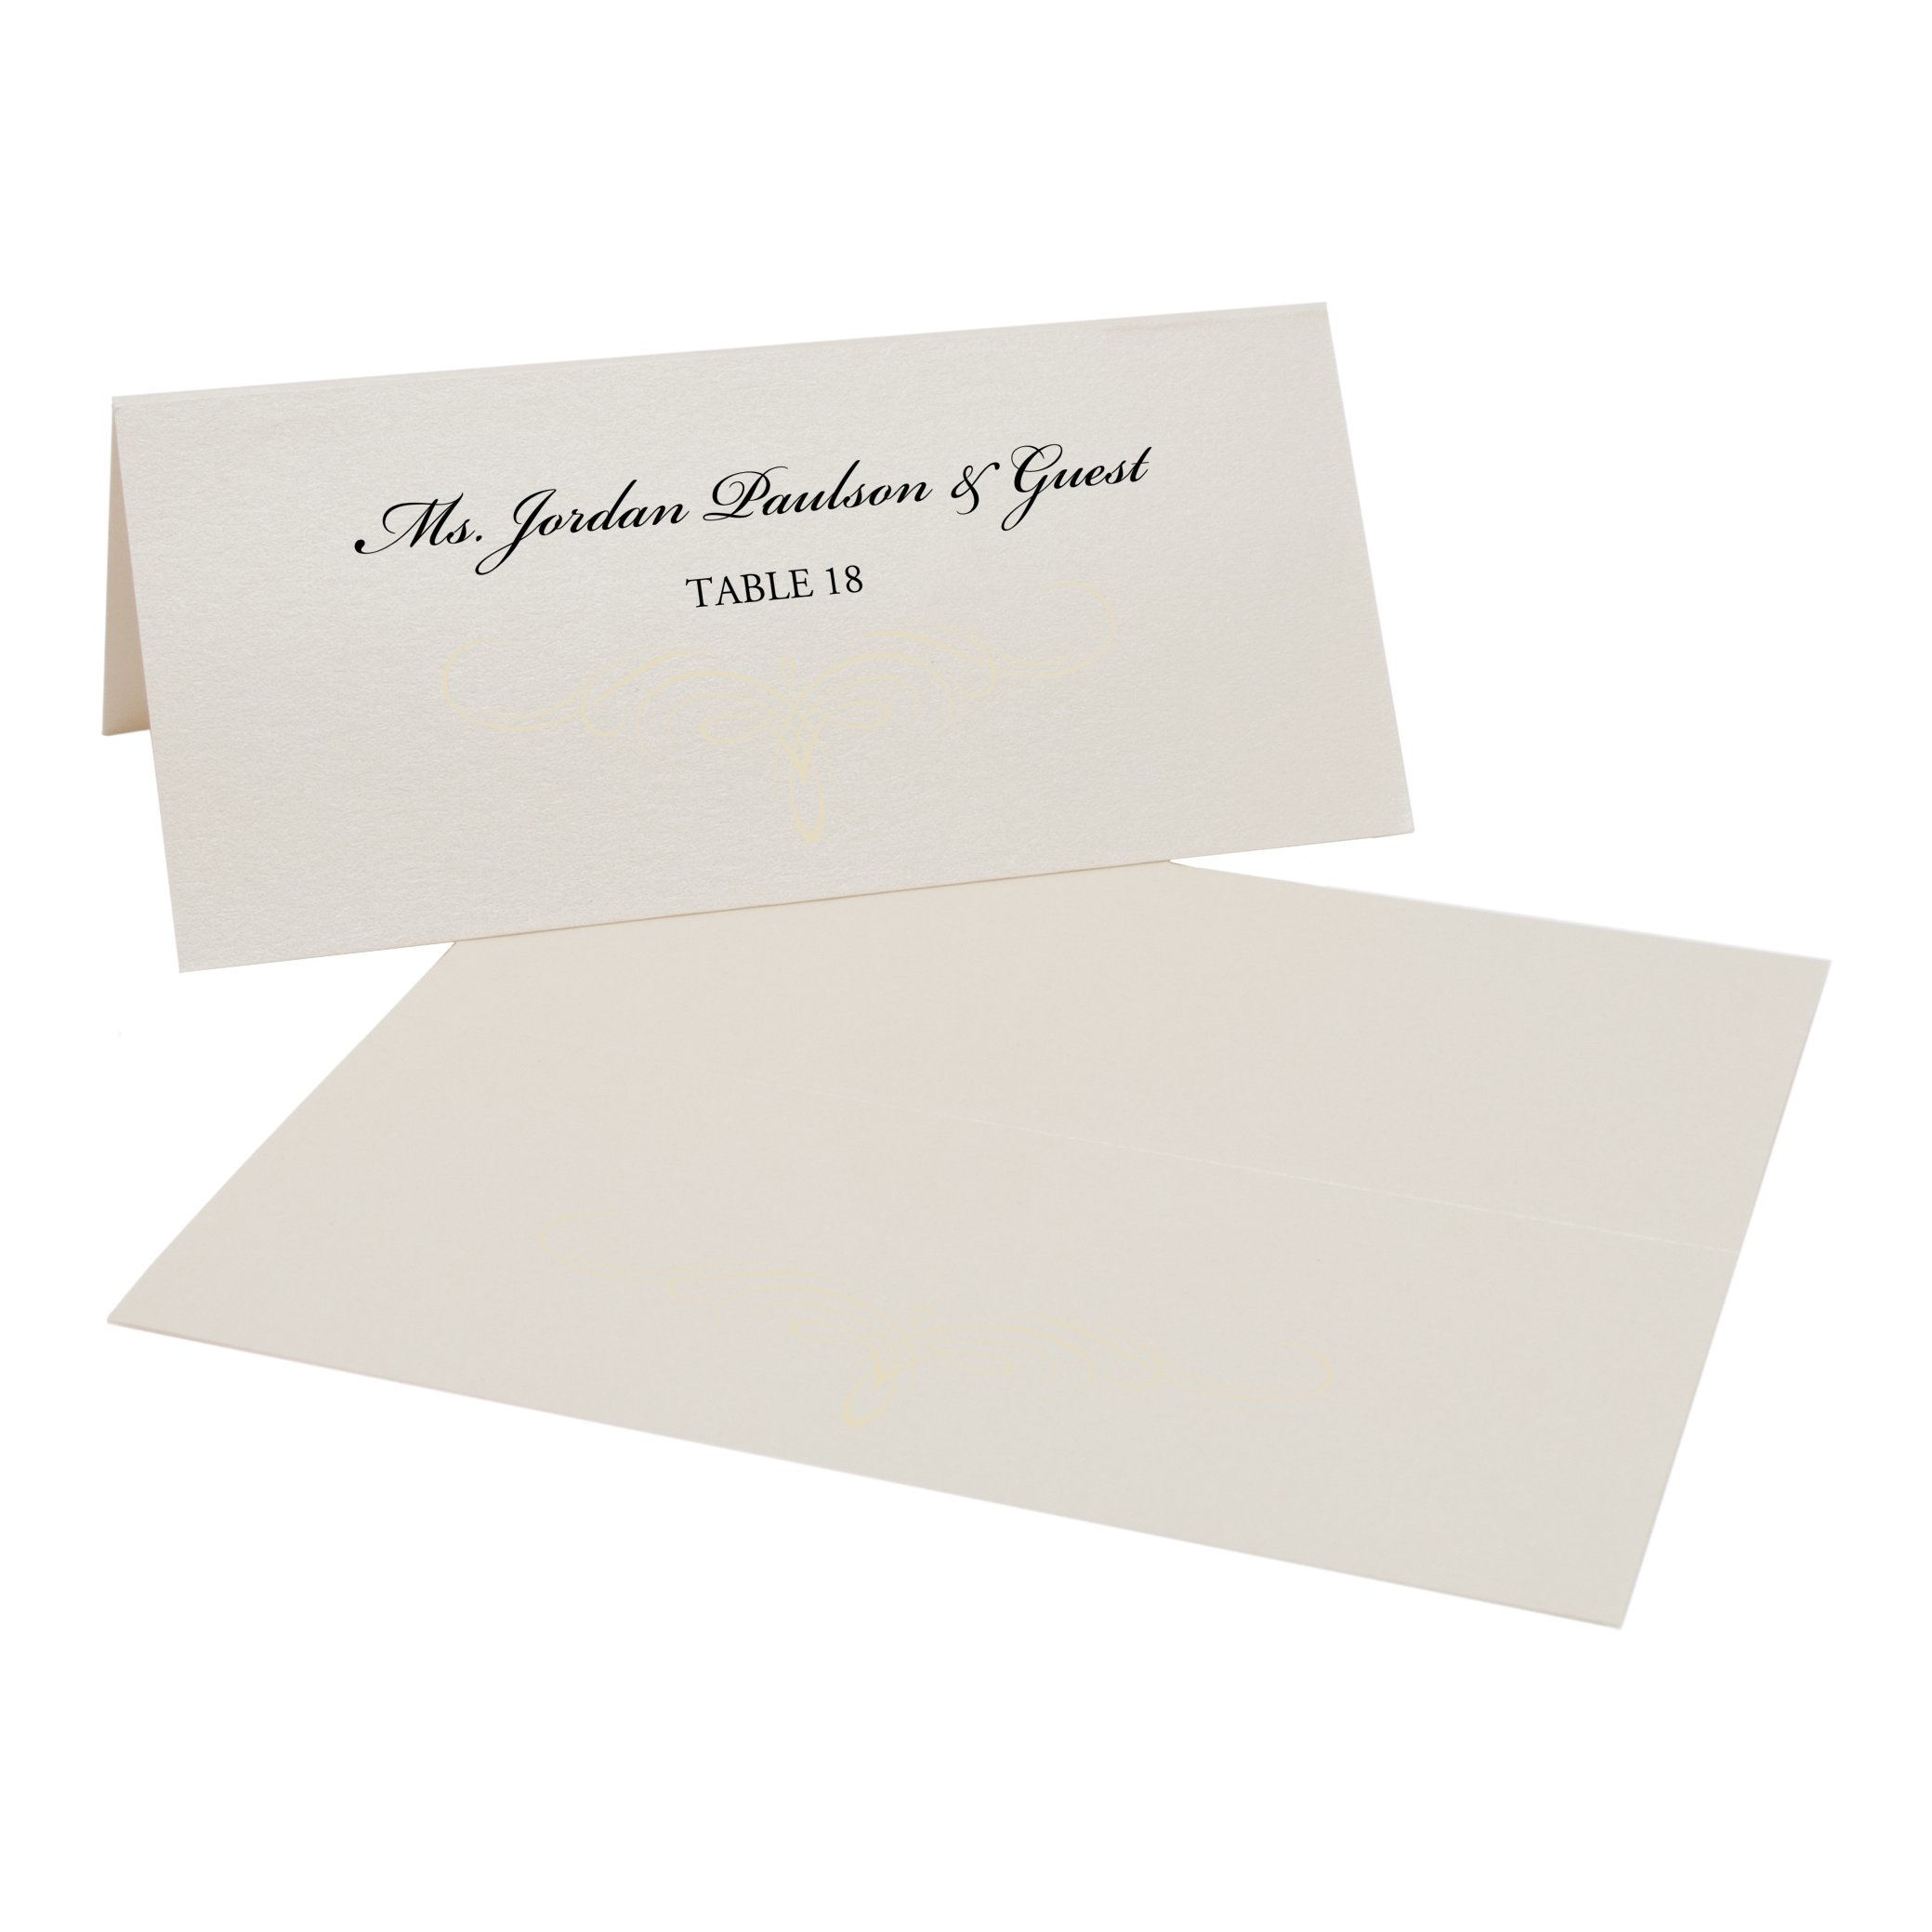 Decadent Flourish Place Cards, Champagne, Ivory, Set of 375 by Documents and Designs